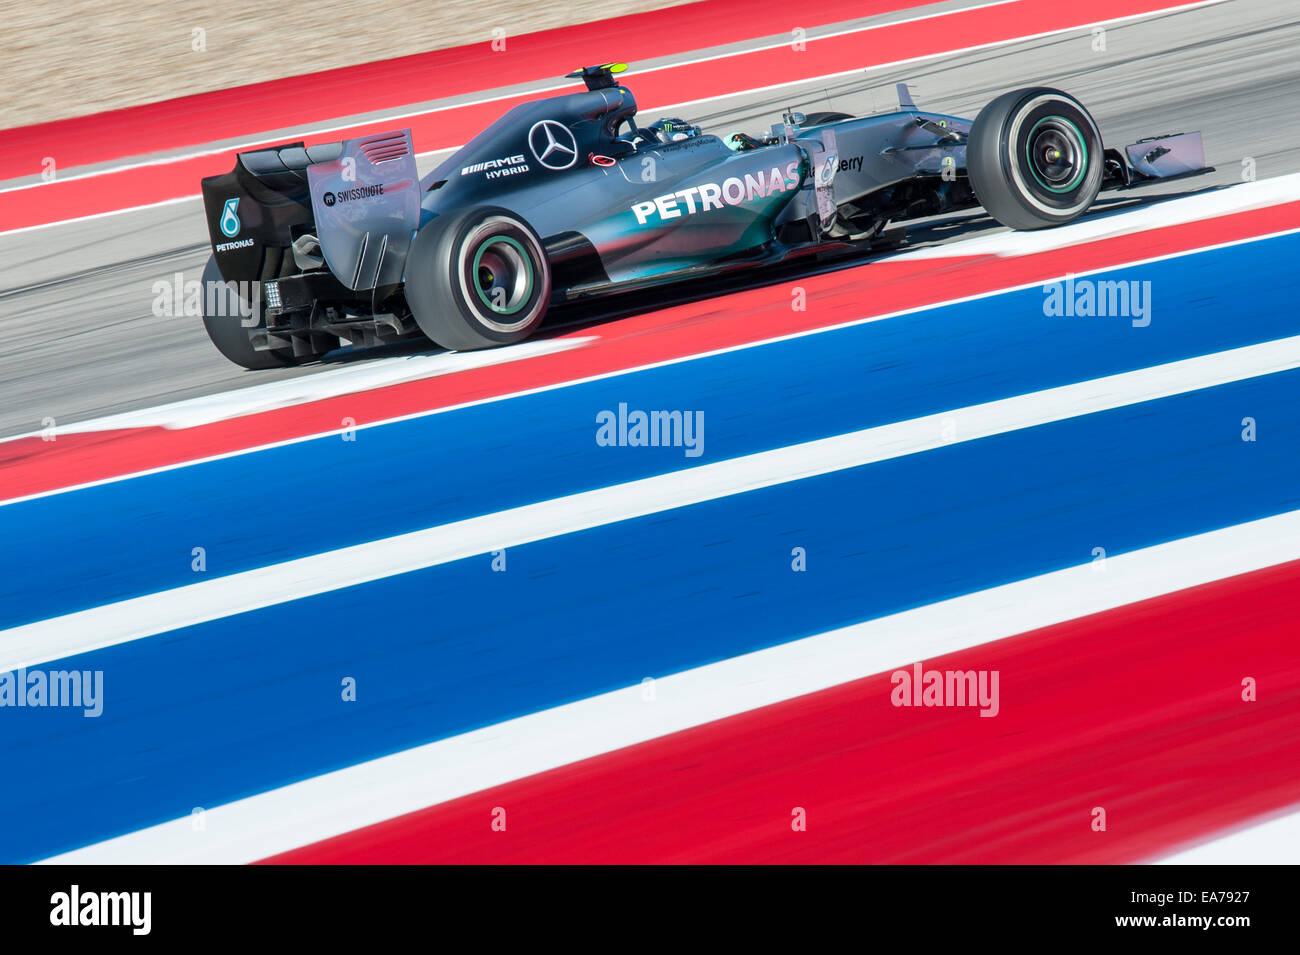 Nico Rosberg of Mercedes AMG Petronas seen at Circuit of the Americas during practice for the 2014 United States Stock Photo